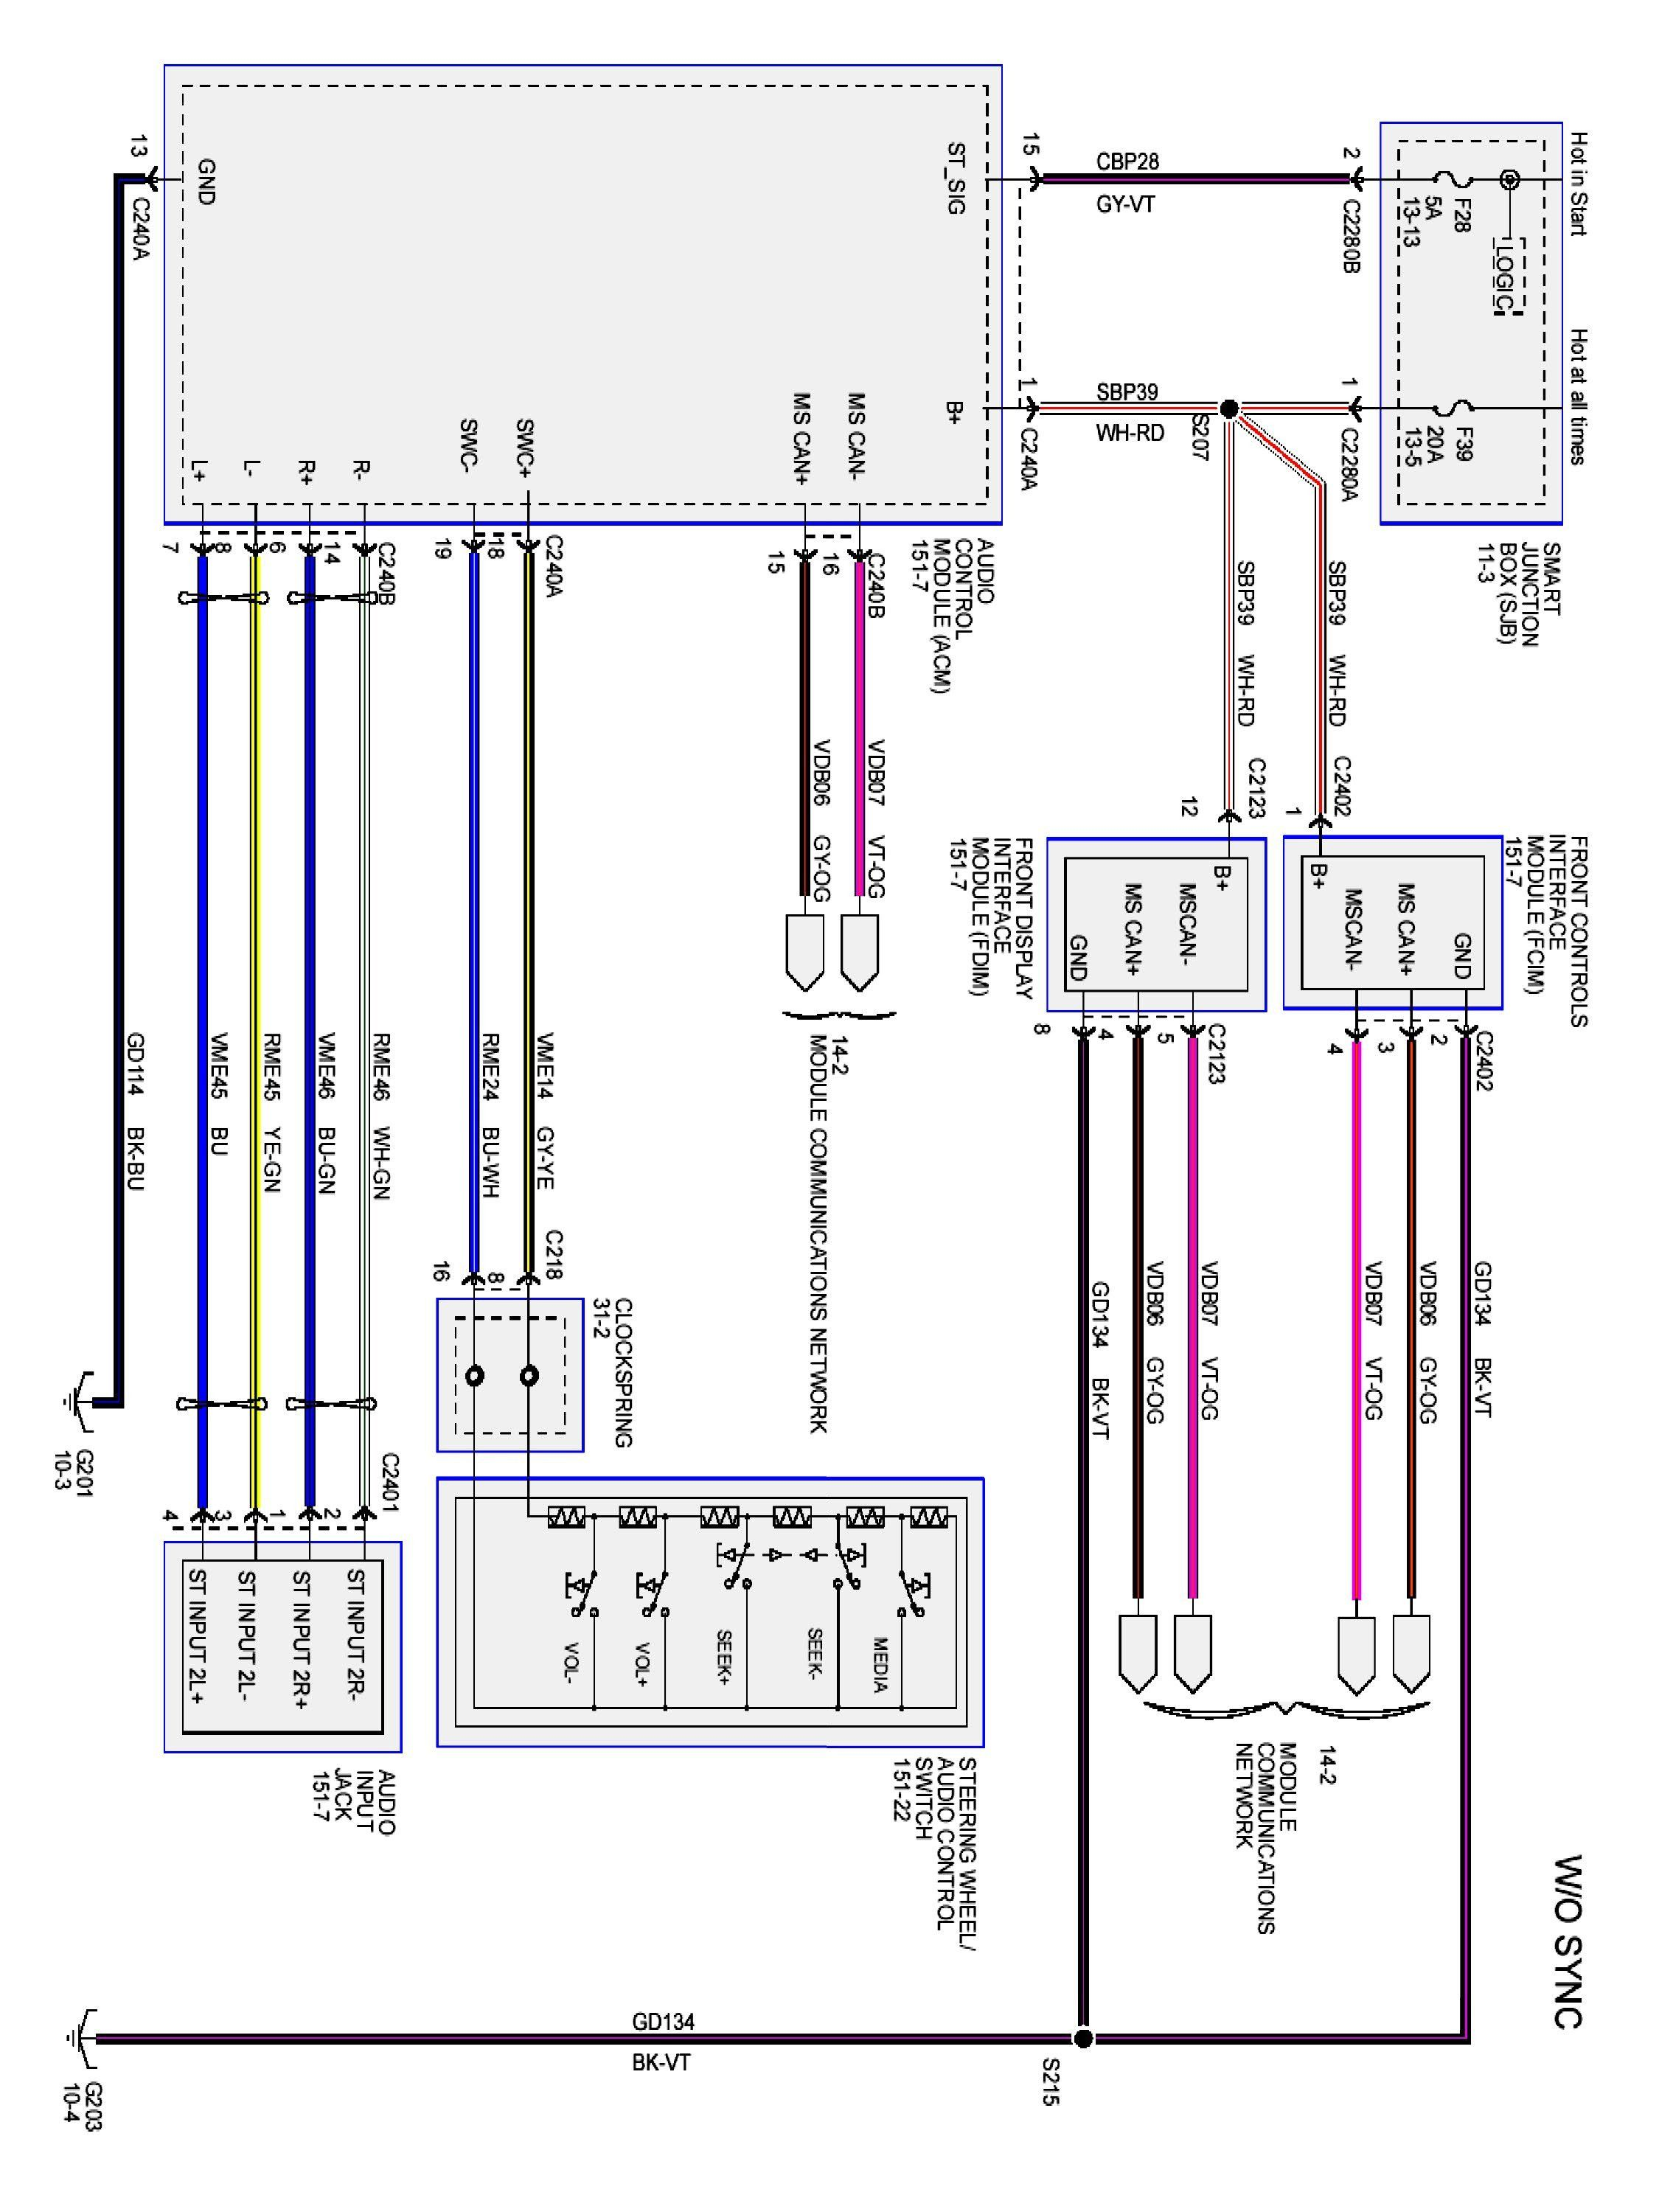 35 Ford Head Light Switch Wiring Diagram Diagram, Ford